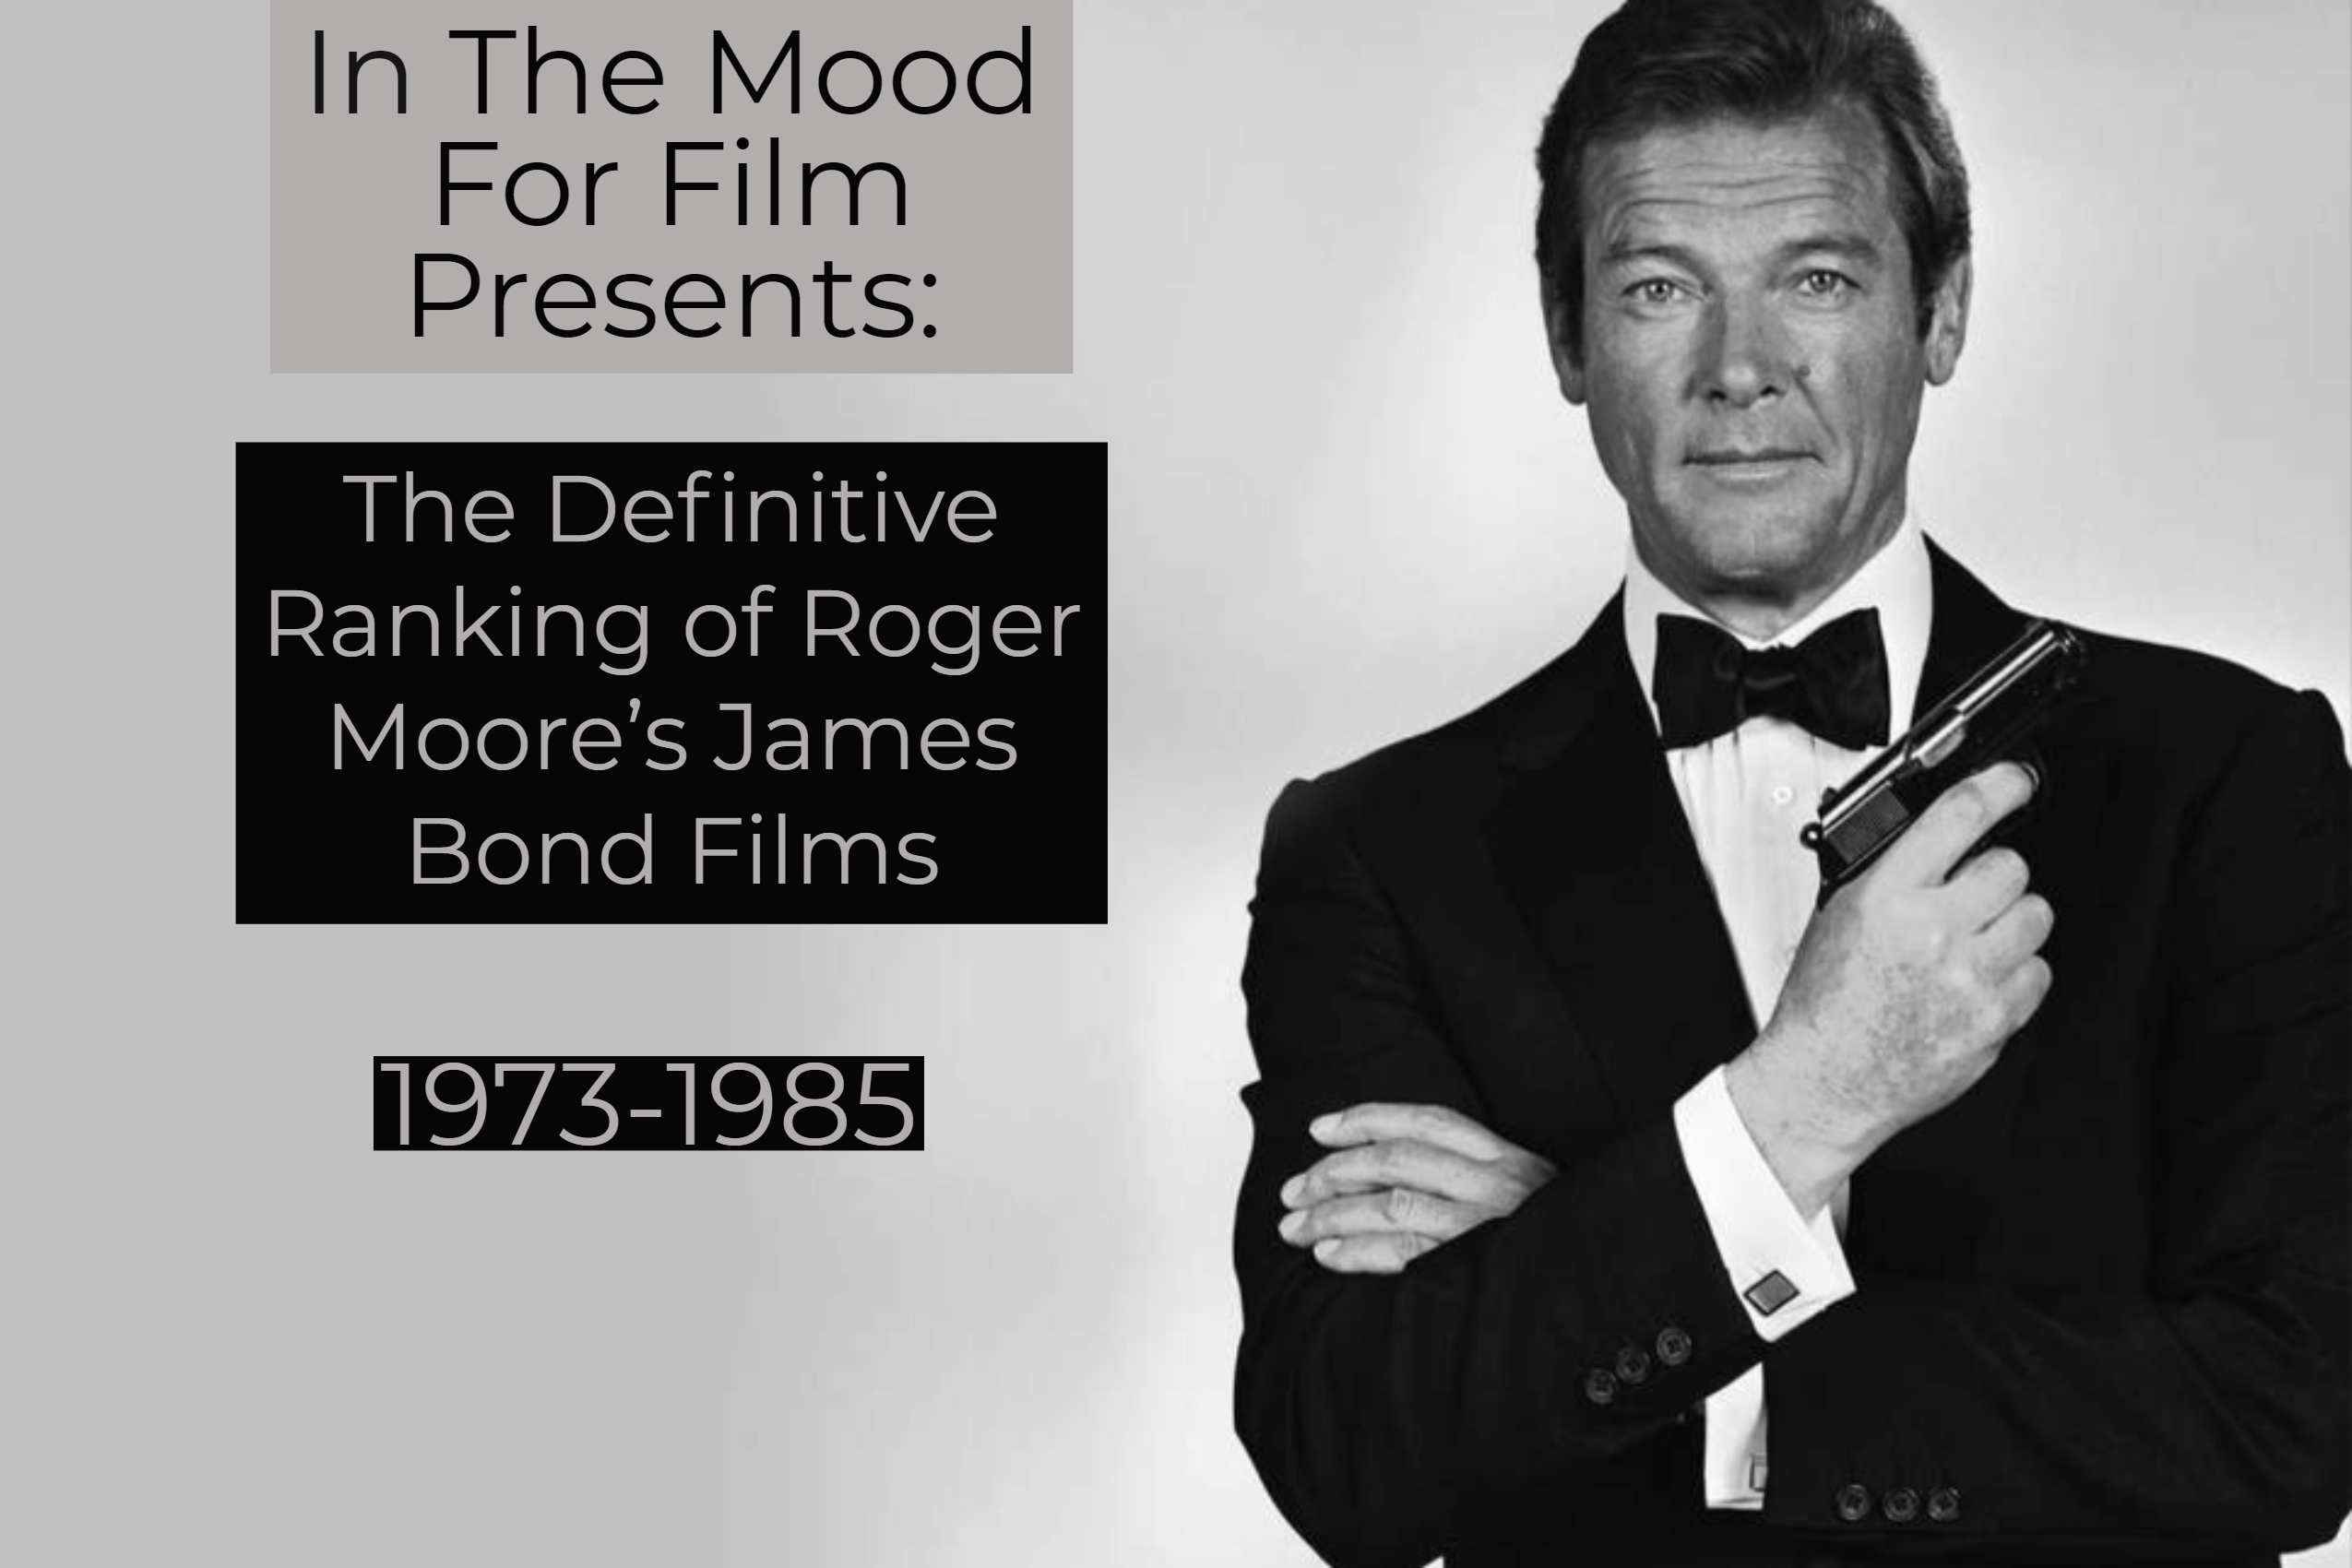 More Roger Moore The Ranking Of His Bond Films In The